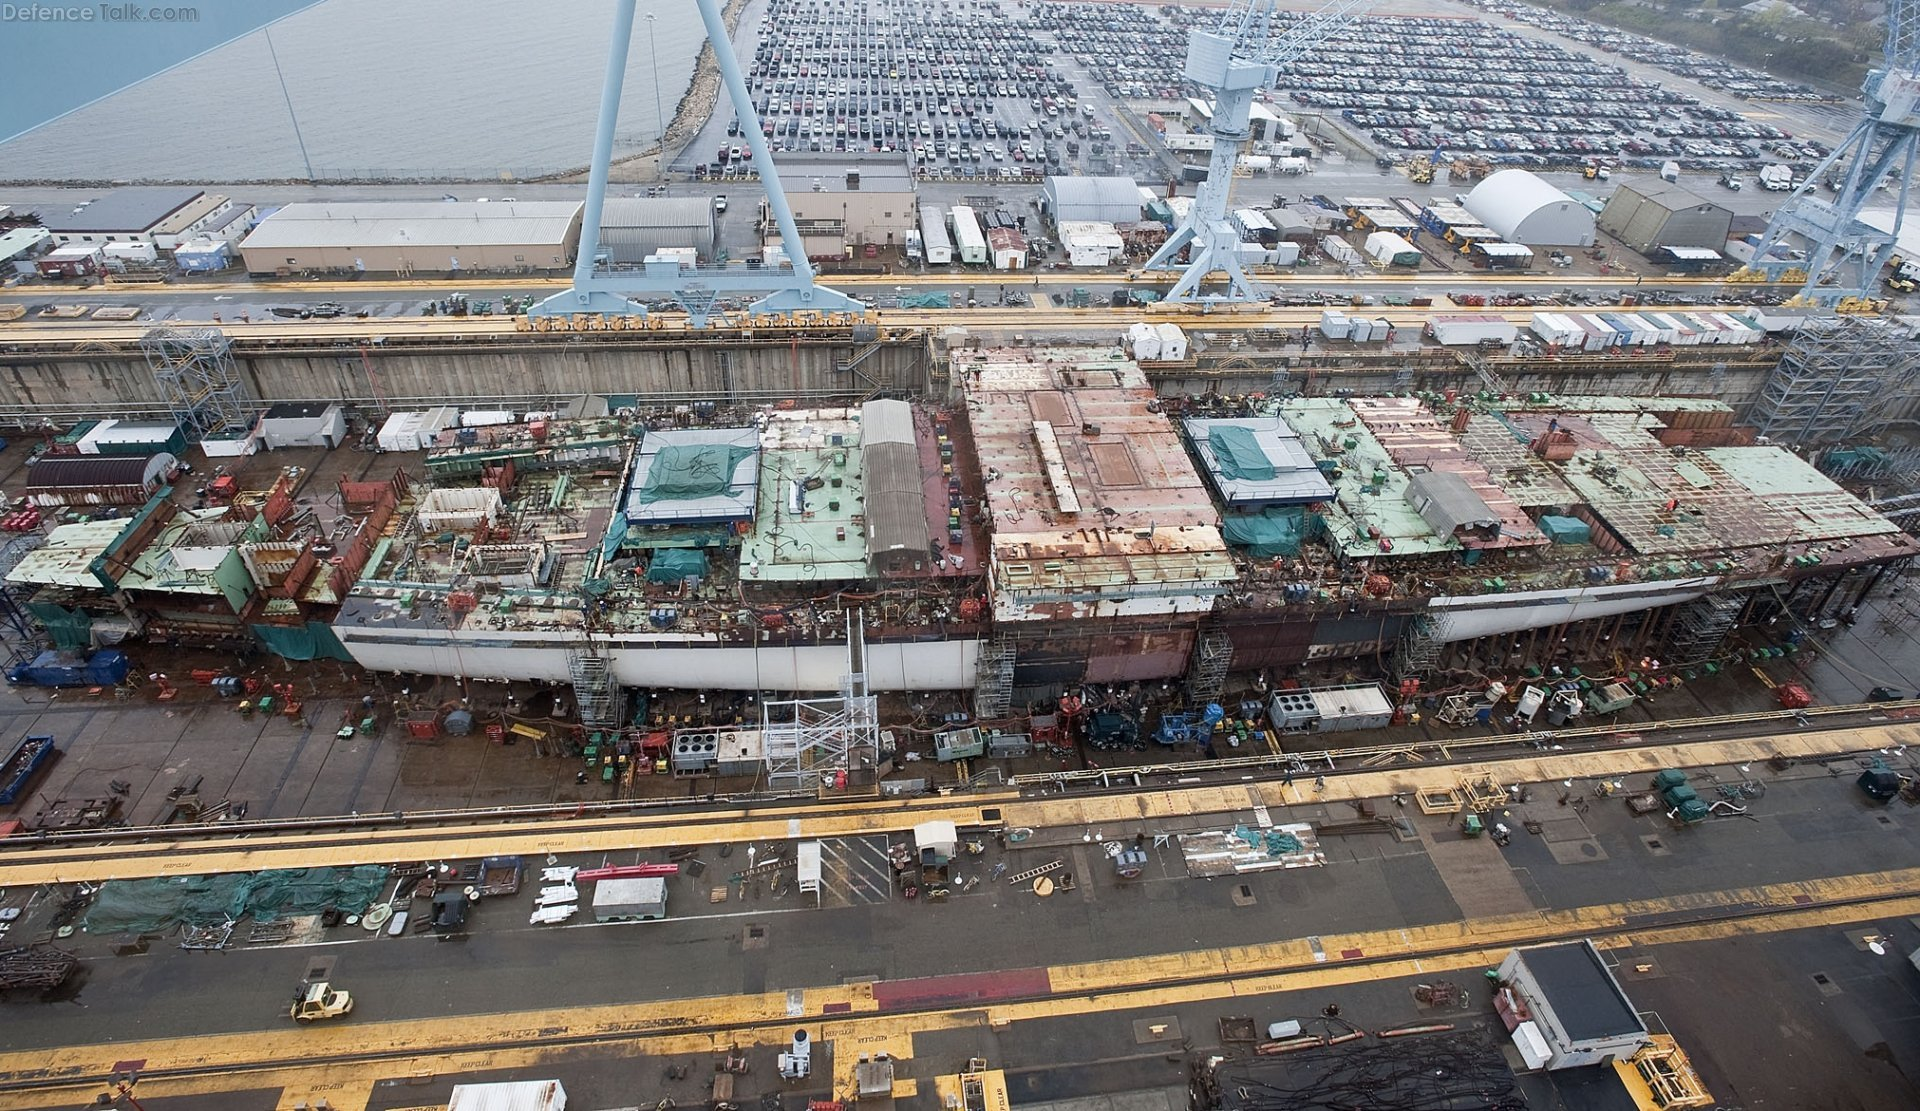 USS Gerald R. Ford, CVN-78 50% complete